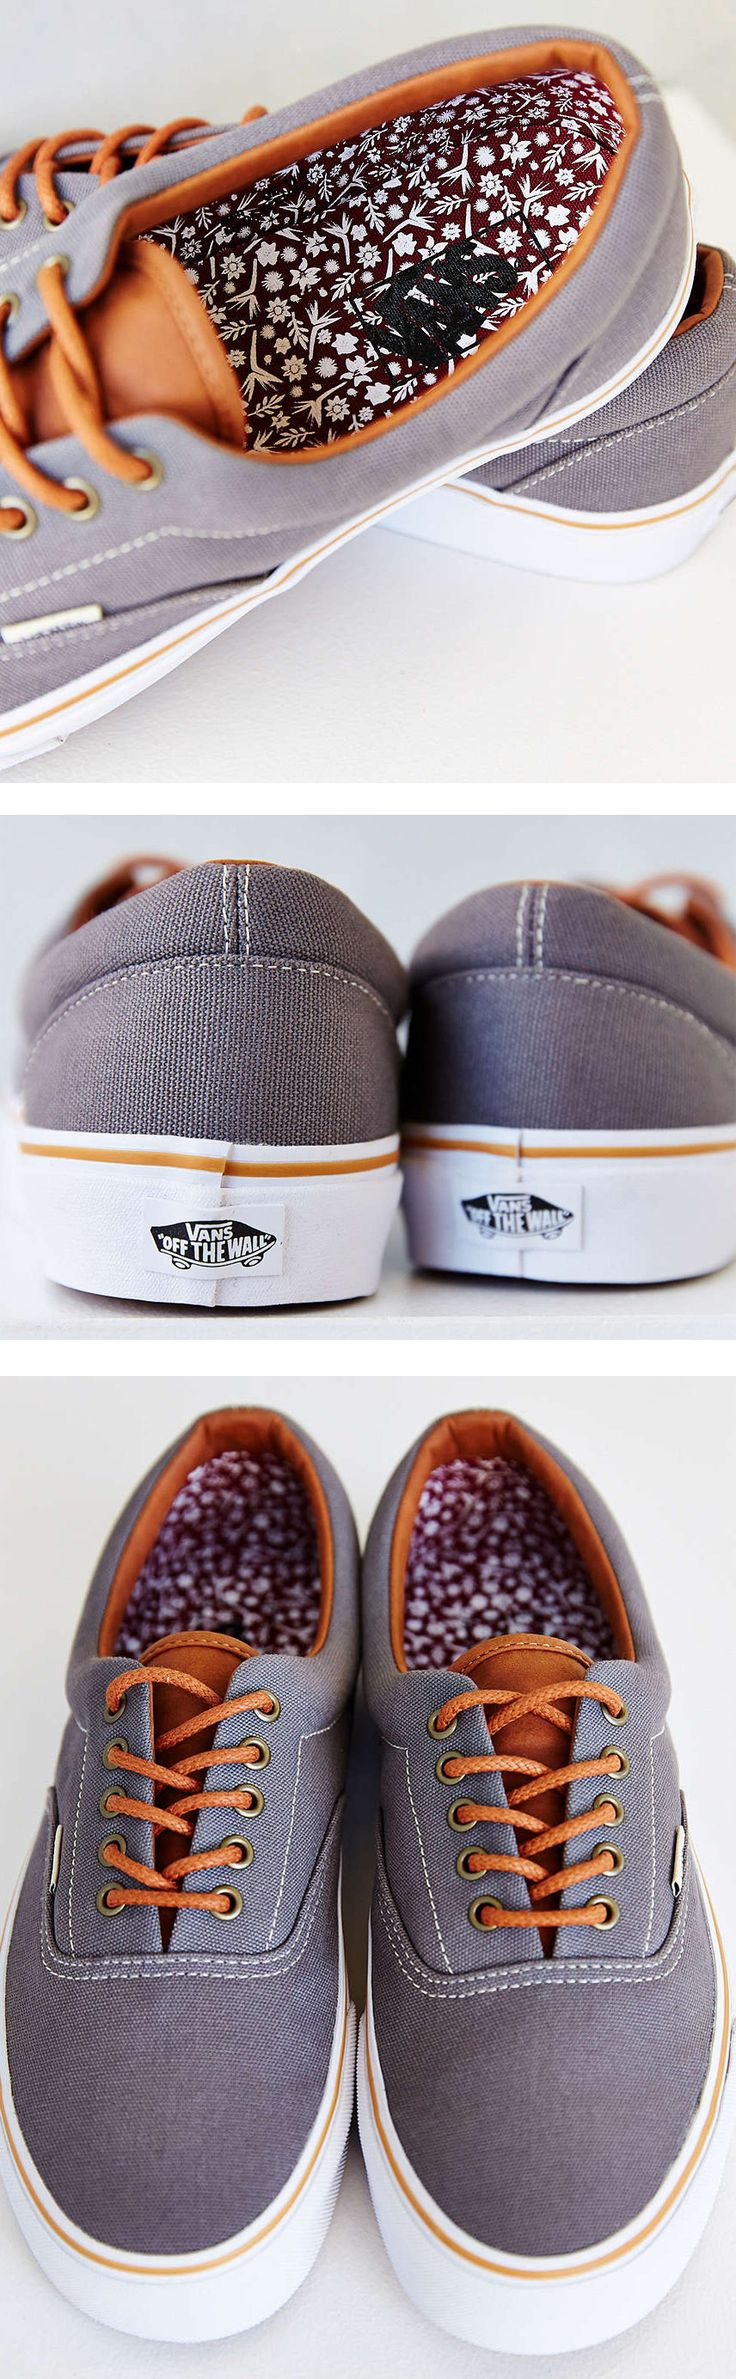 Vans Era Shoes // Work Floral Print Insoles // Grey - Smoked Pearl Canvas Sneakers